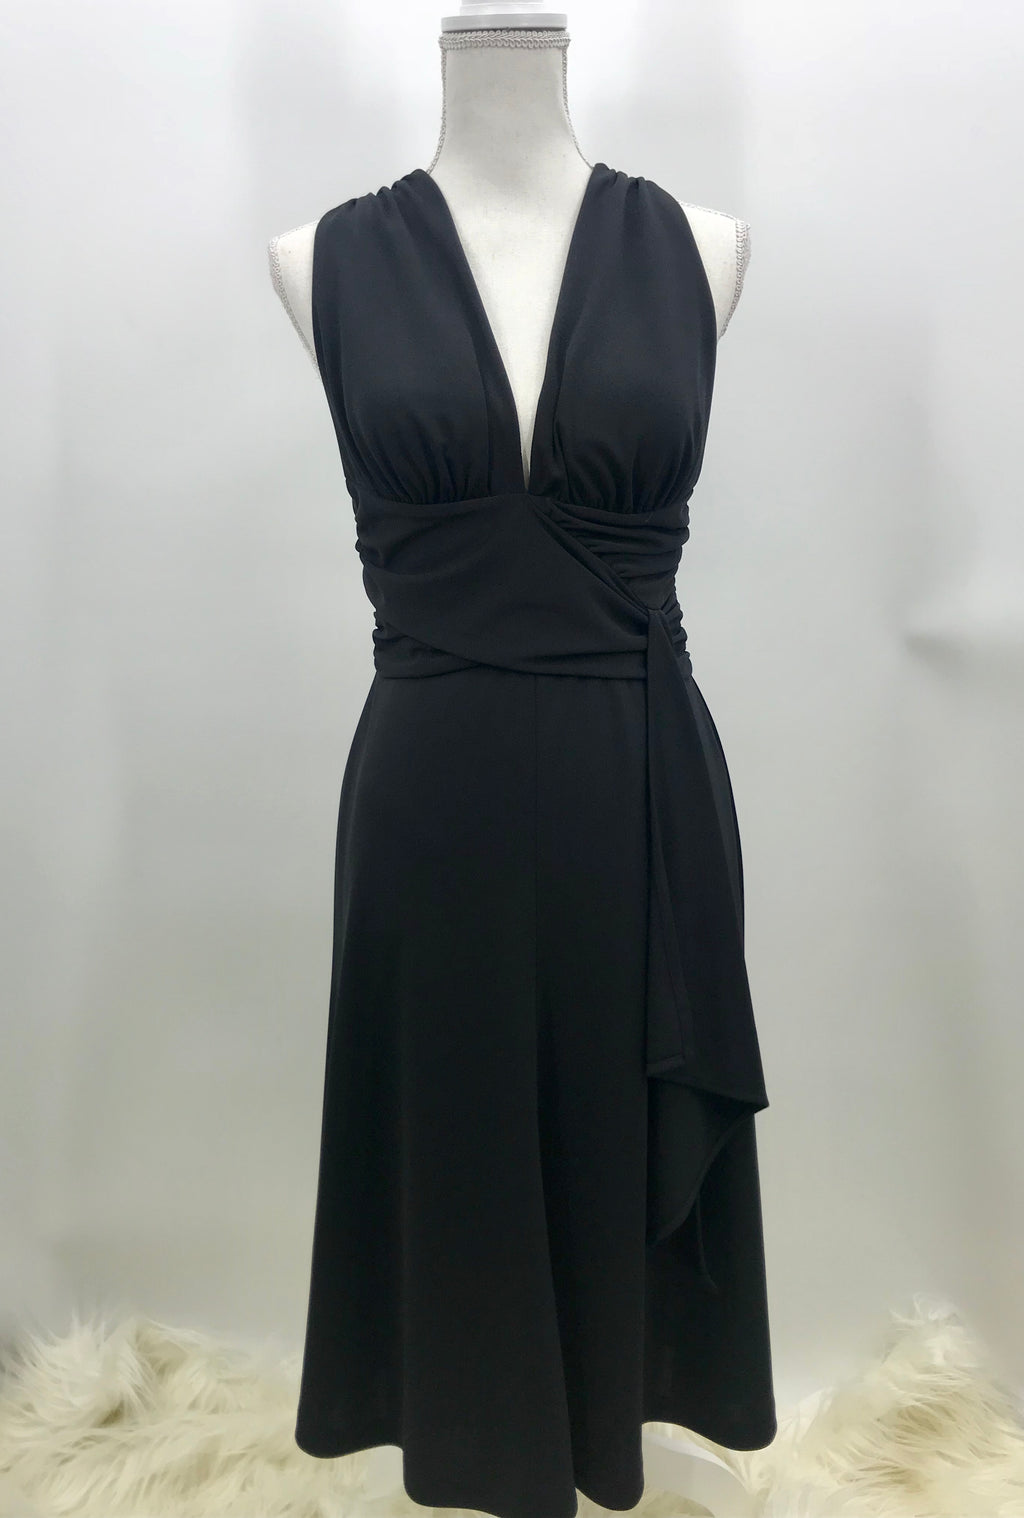 White House Black Dress, Cocktail